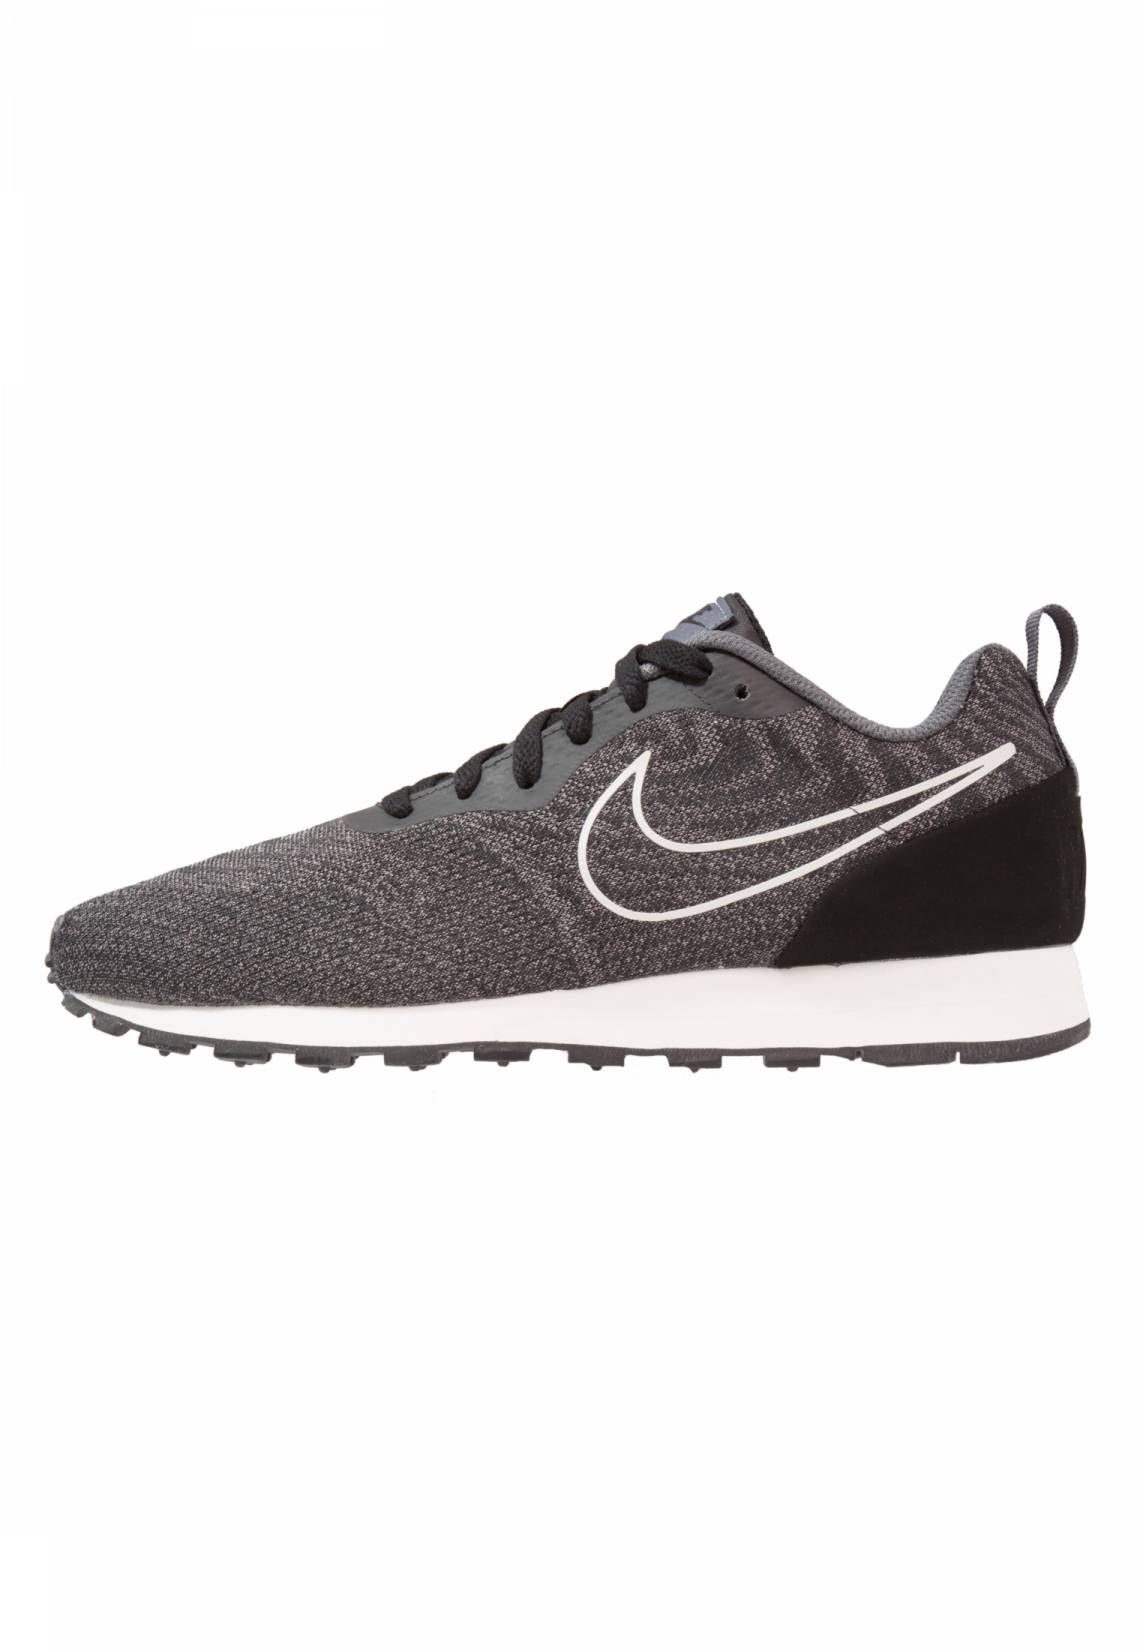 1d4a2fc0d17 Nike Sportswear. MD RUNNER 2 ENG MESH - Zapatillas - black dark grey ...